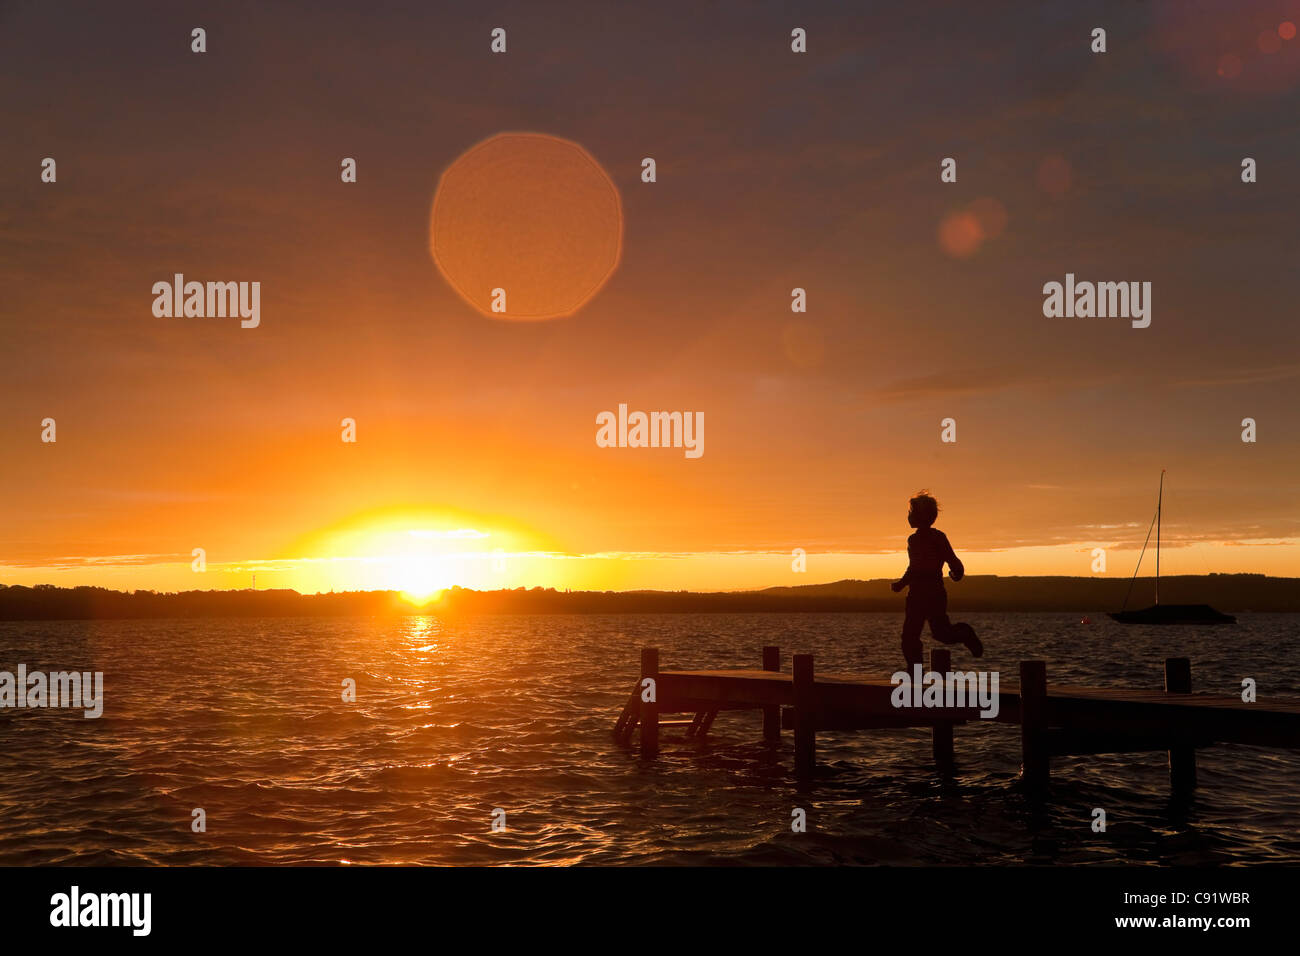 Boy running on wooden dock at sunset - Stock Image